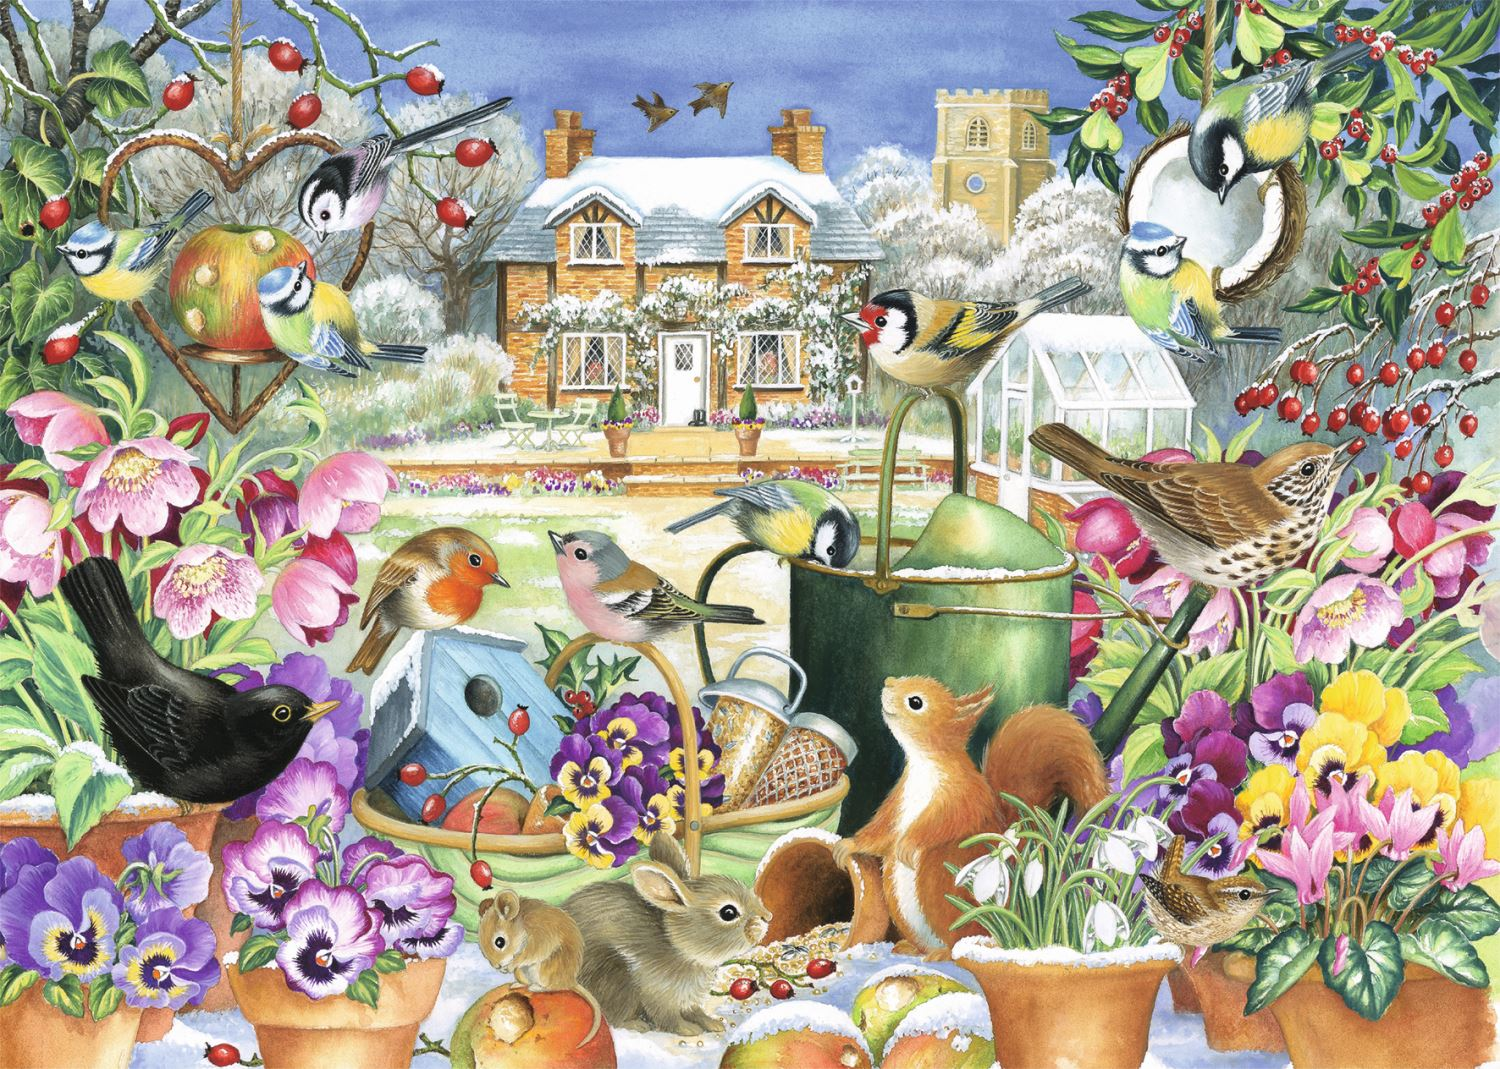 Jumbo-Games-Premium-Child-Adult-Jigsaw-Puzzles-Various-Designs-And-Pieces thumbnail 45